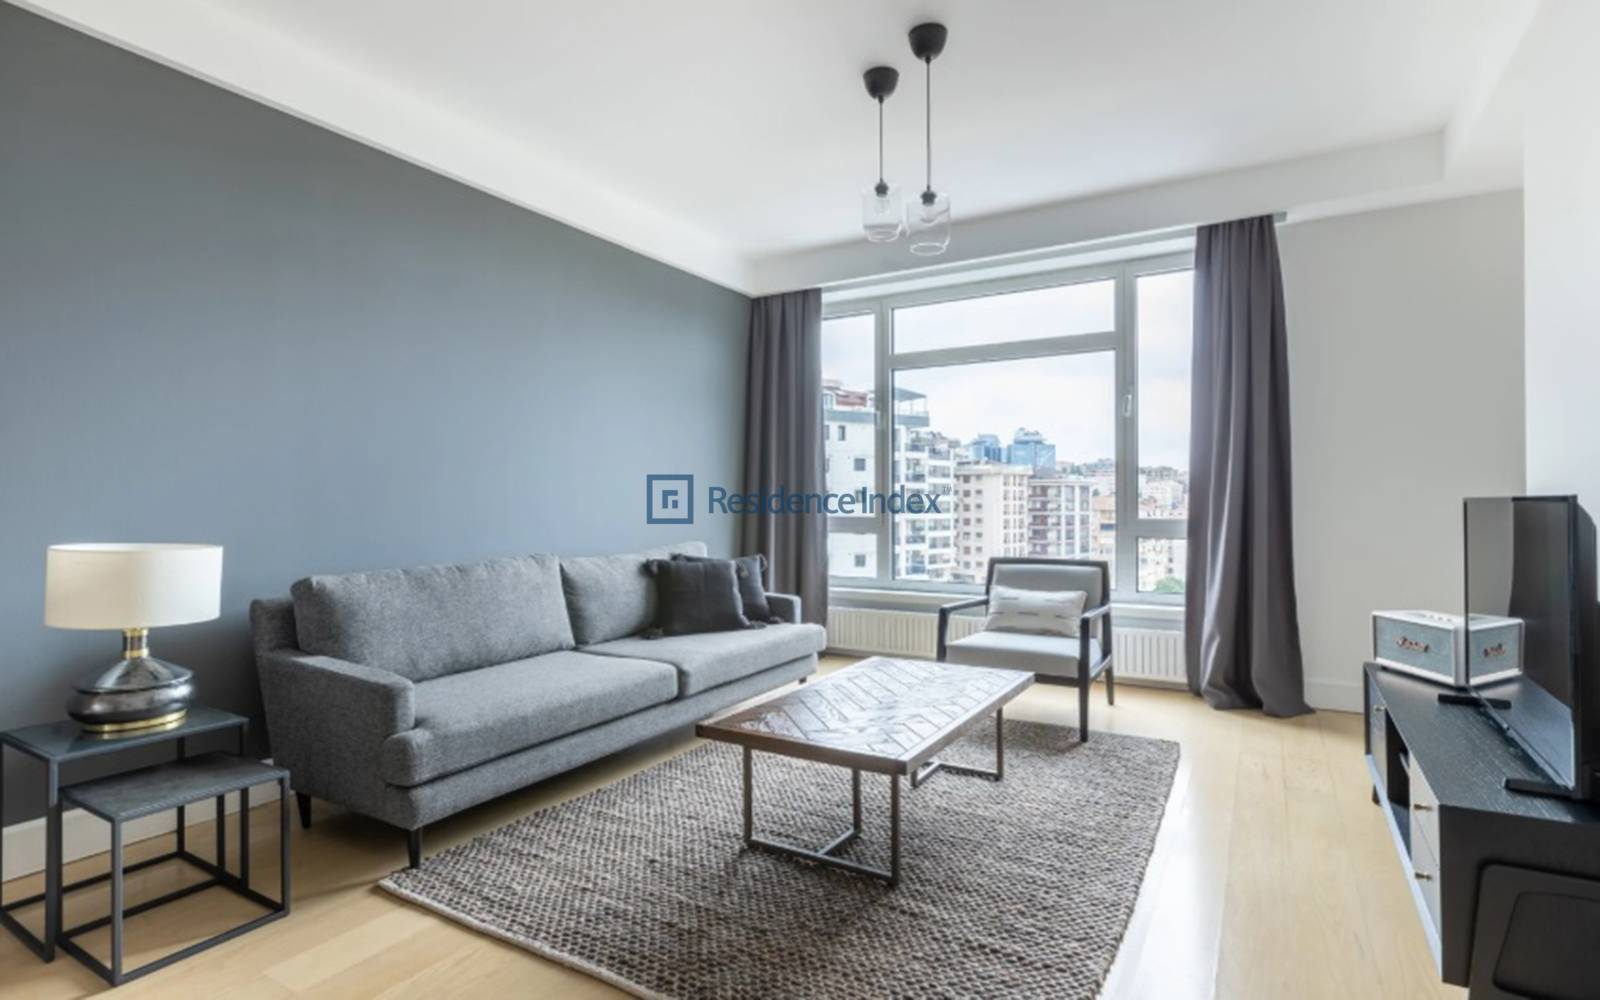 Selenium Twins - 1+1 Furnished Apartment for Rent